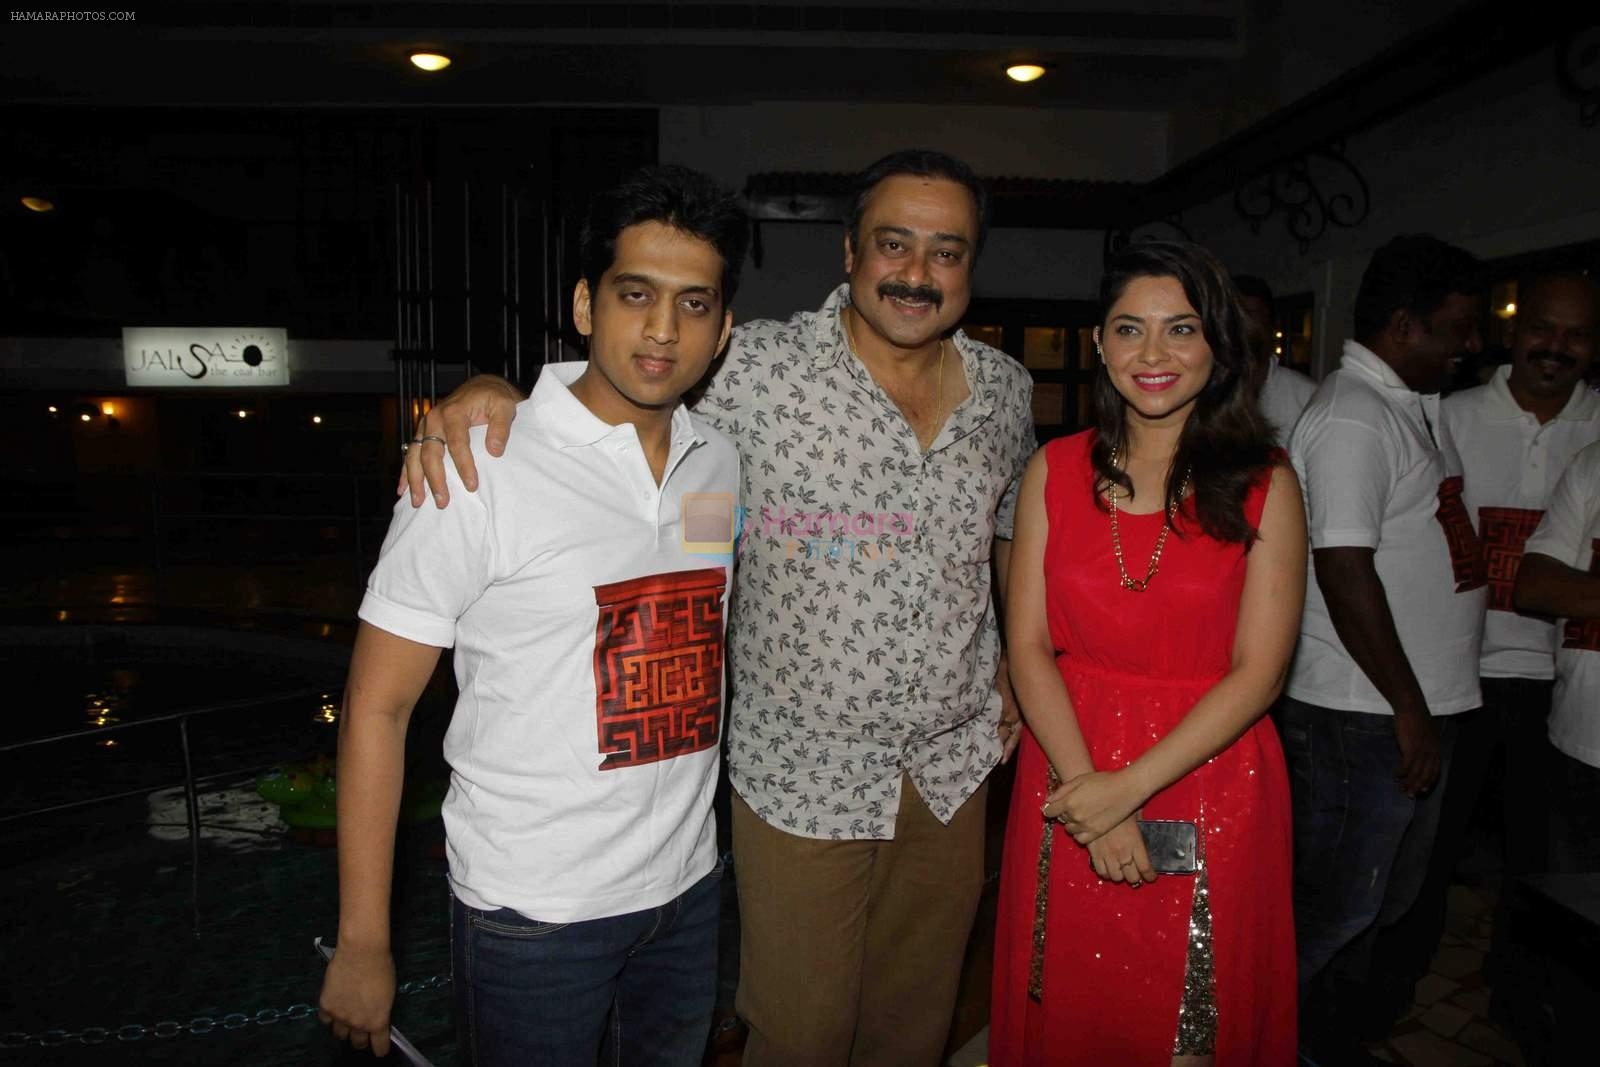 Sonalee Kulkarni, Sachin Khedekar, Amey Wagh at Shutter music launch in Mumbai on 25th June 2015